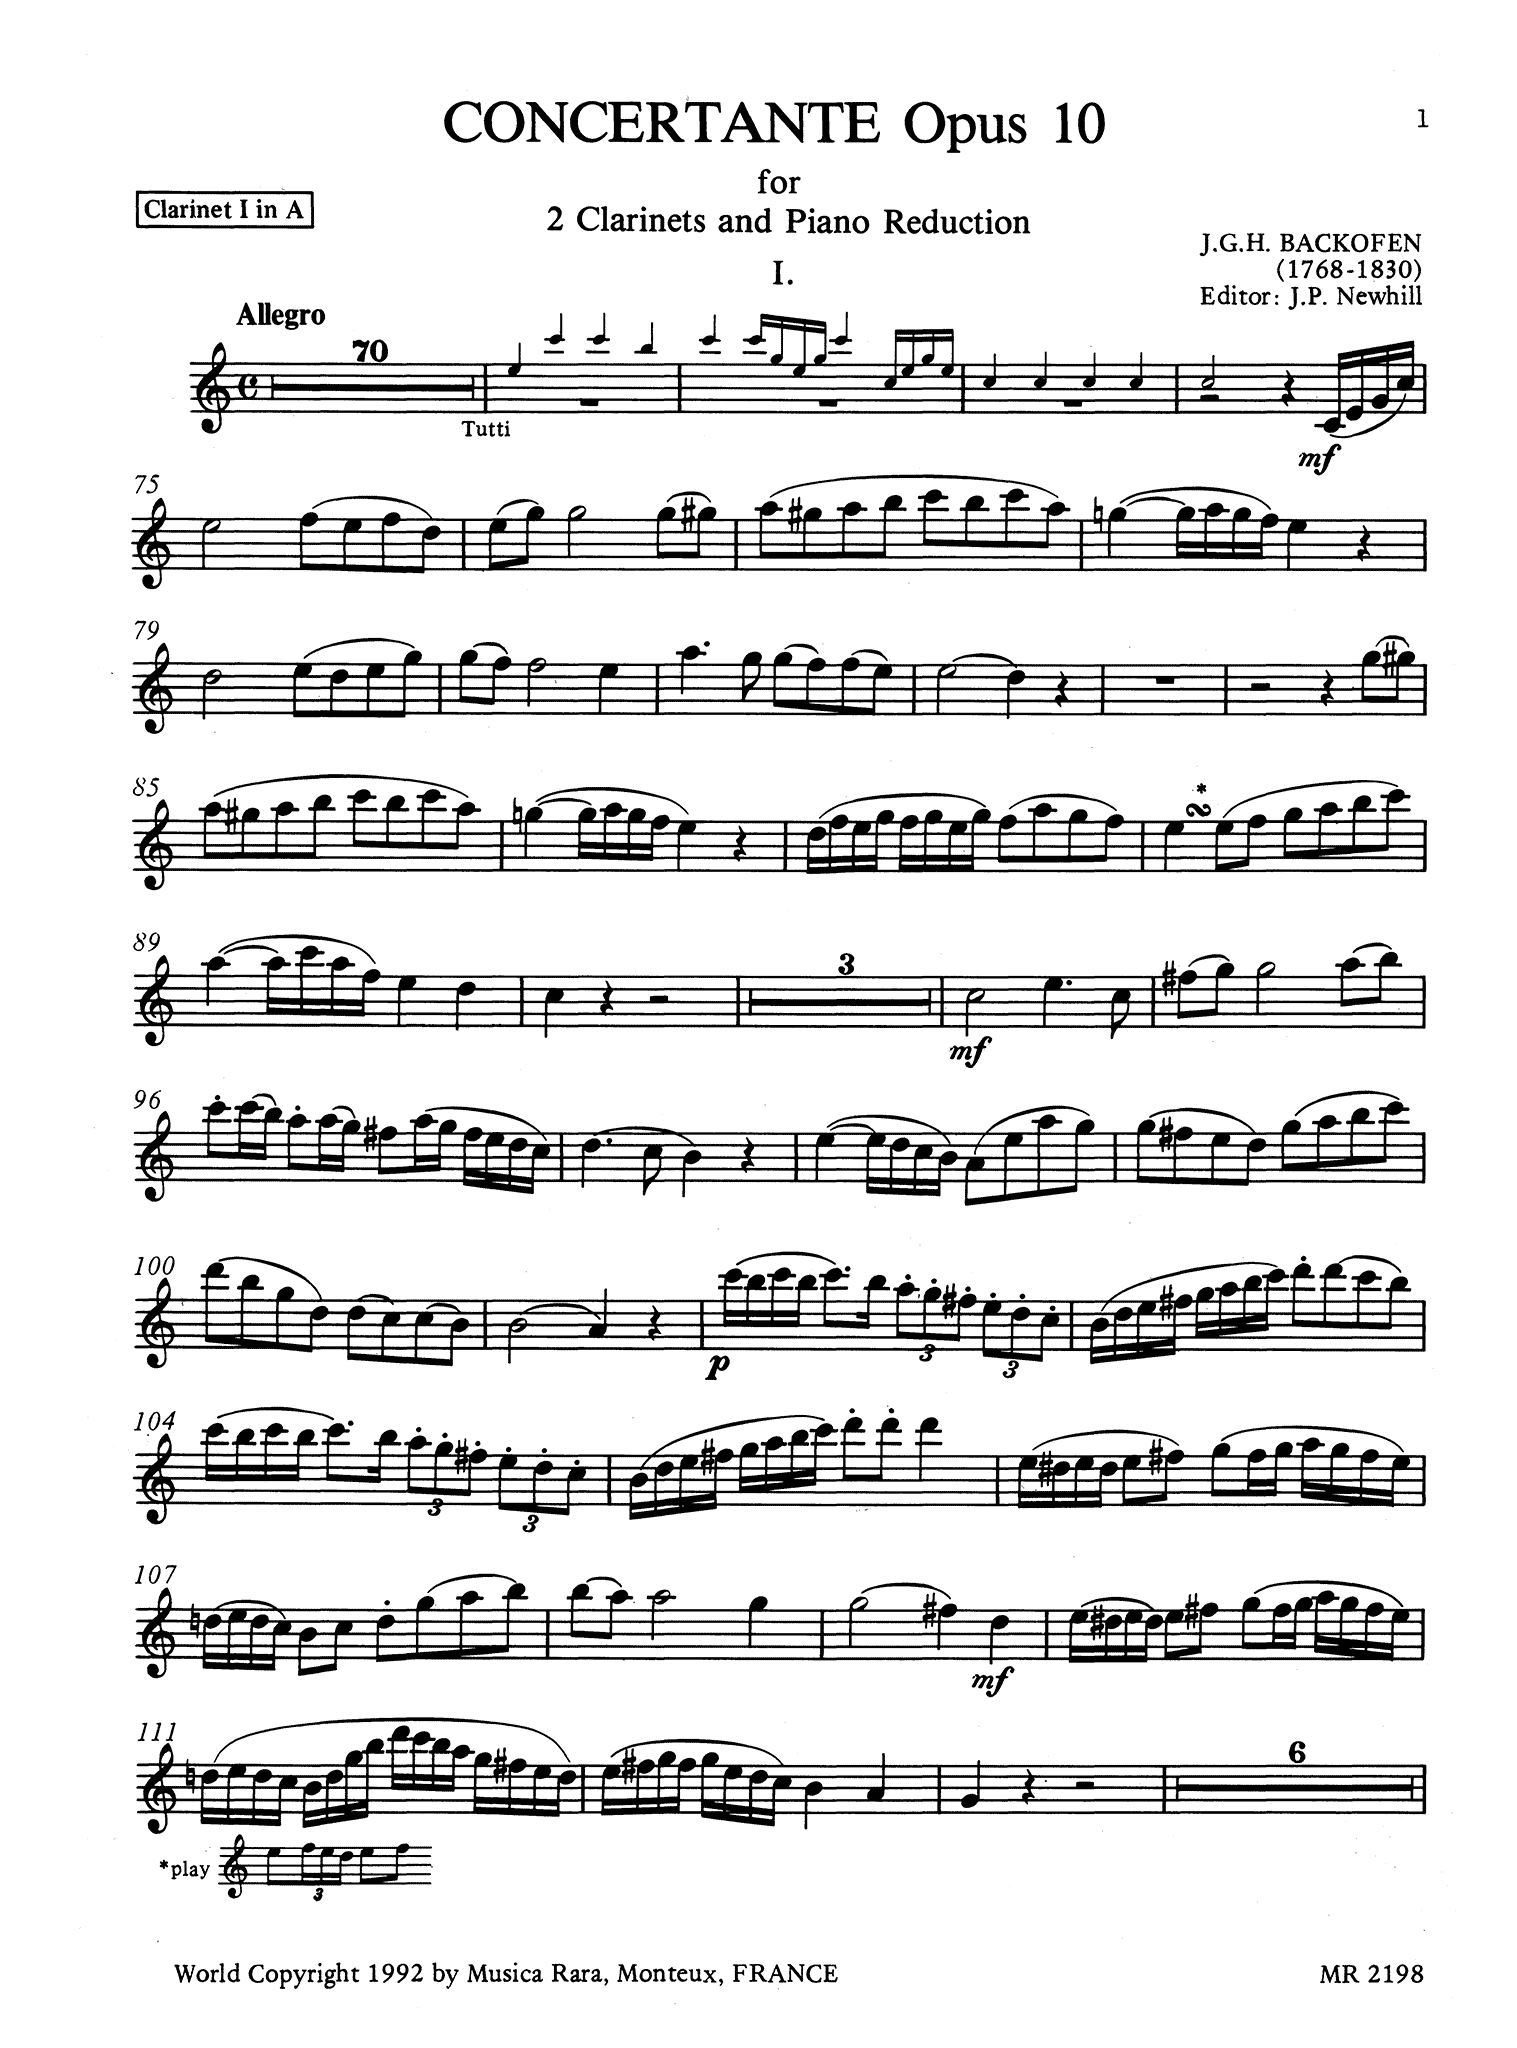 Backofen Sinfonia Concertante, Op. 10 First Clarinet part